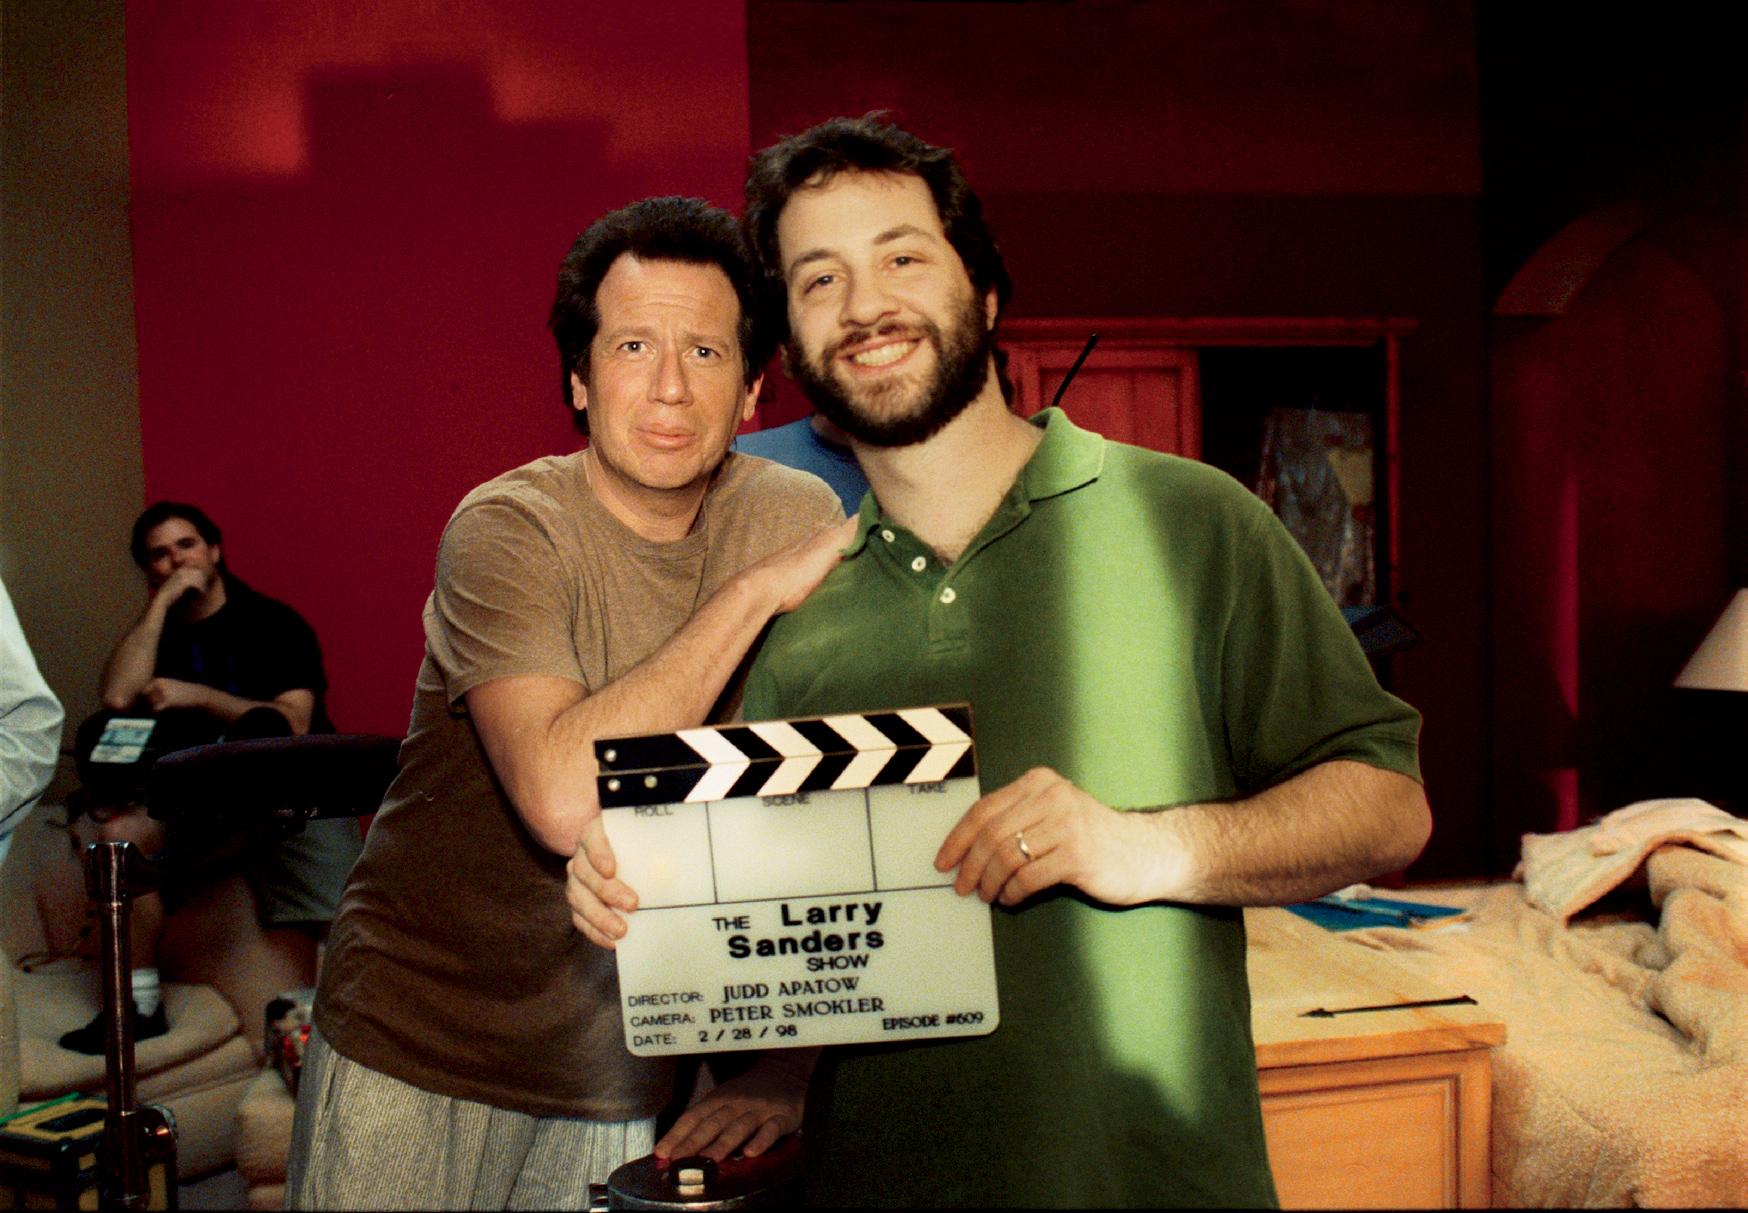 Zen Diaries Of Garry Shandling Judd Apatow On Moving New Comedy